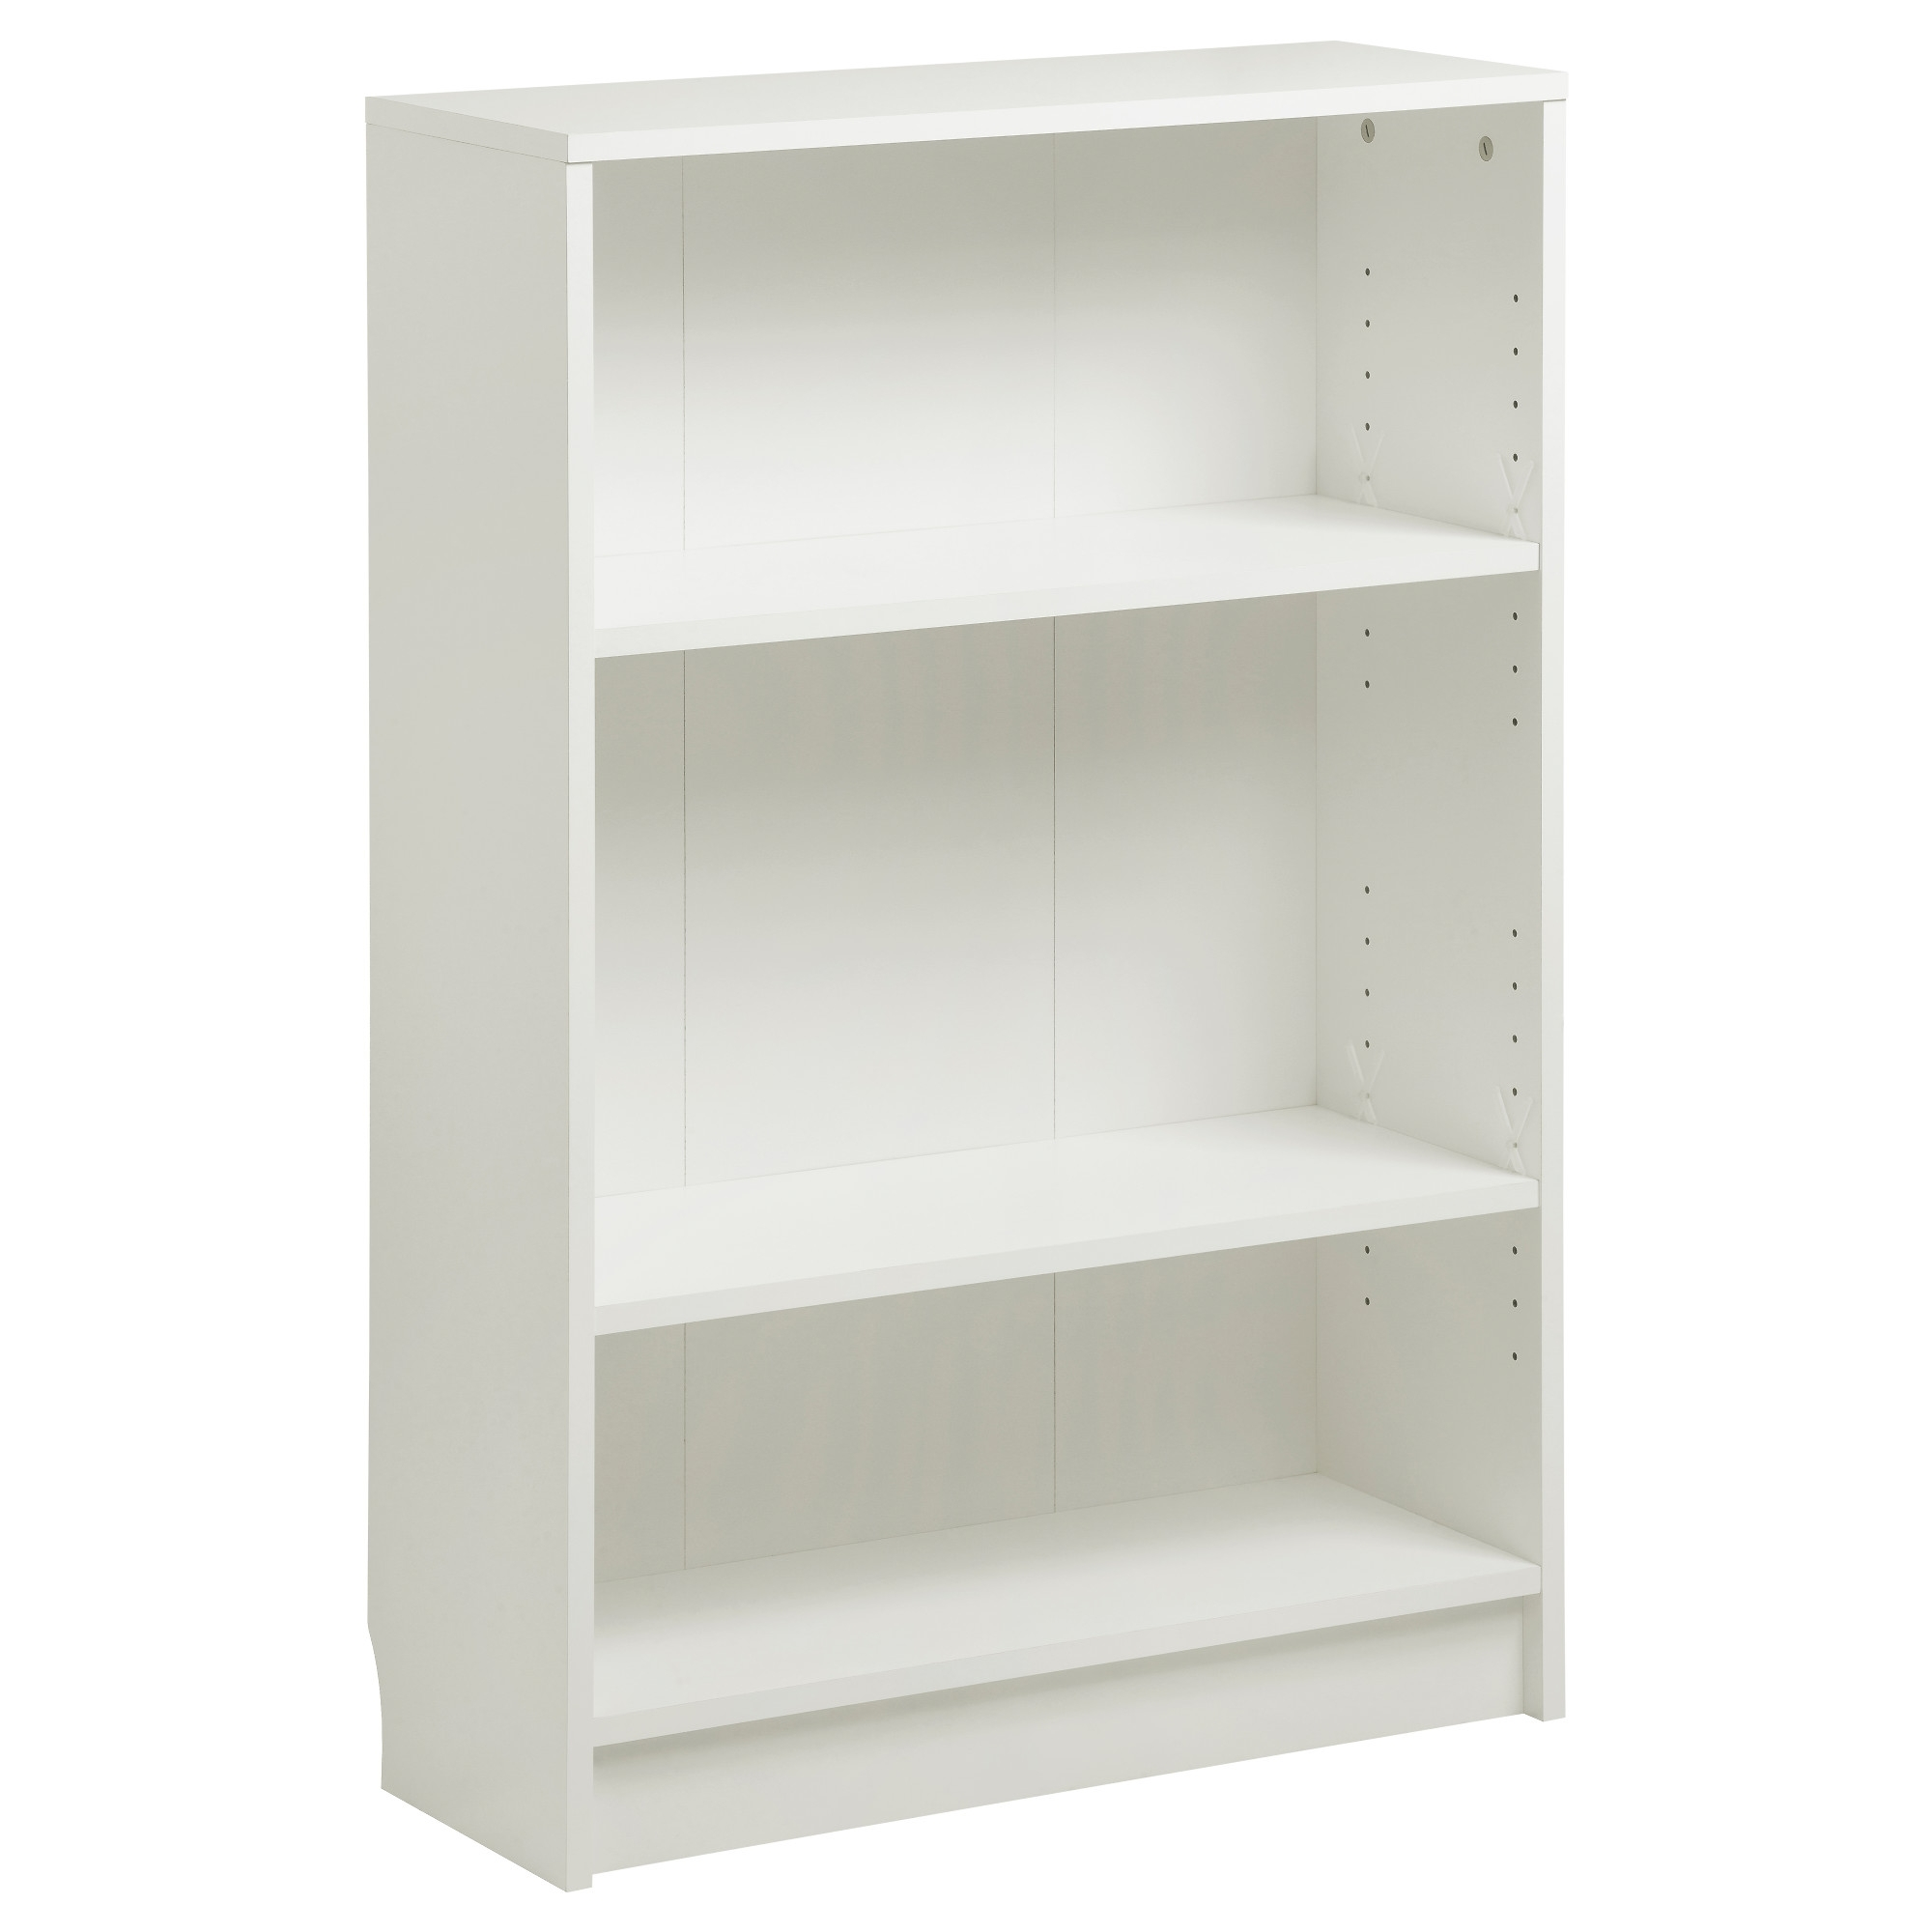 Narrow Depth Bookcase Avdala Ikea Bookcases Wood And Metal Plans Regarding Widely Used Narrow White Bookcases (View 15 of 15)